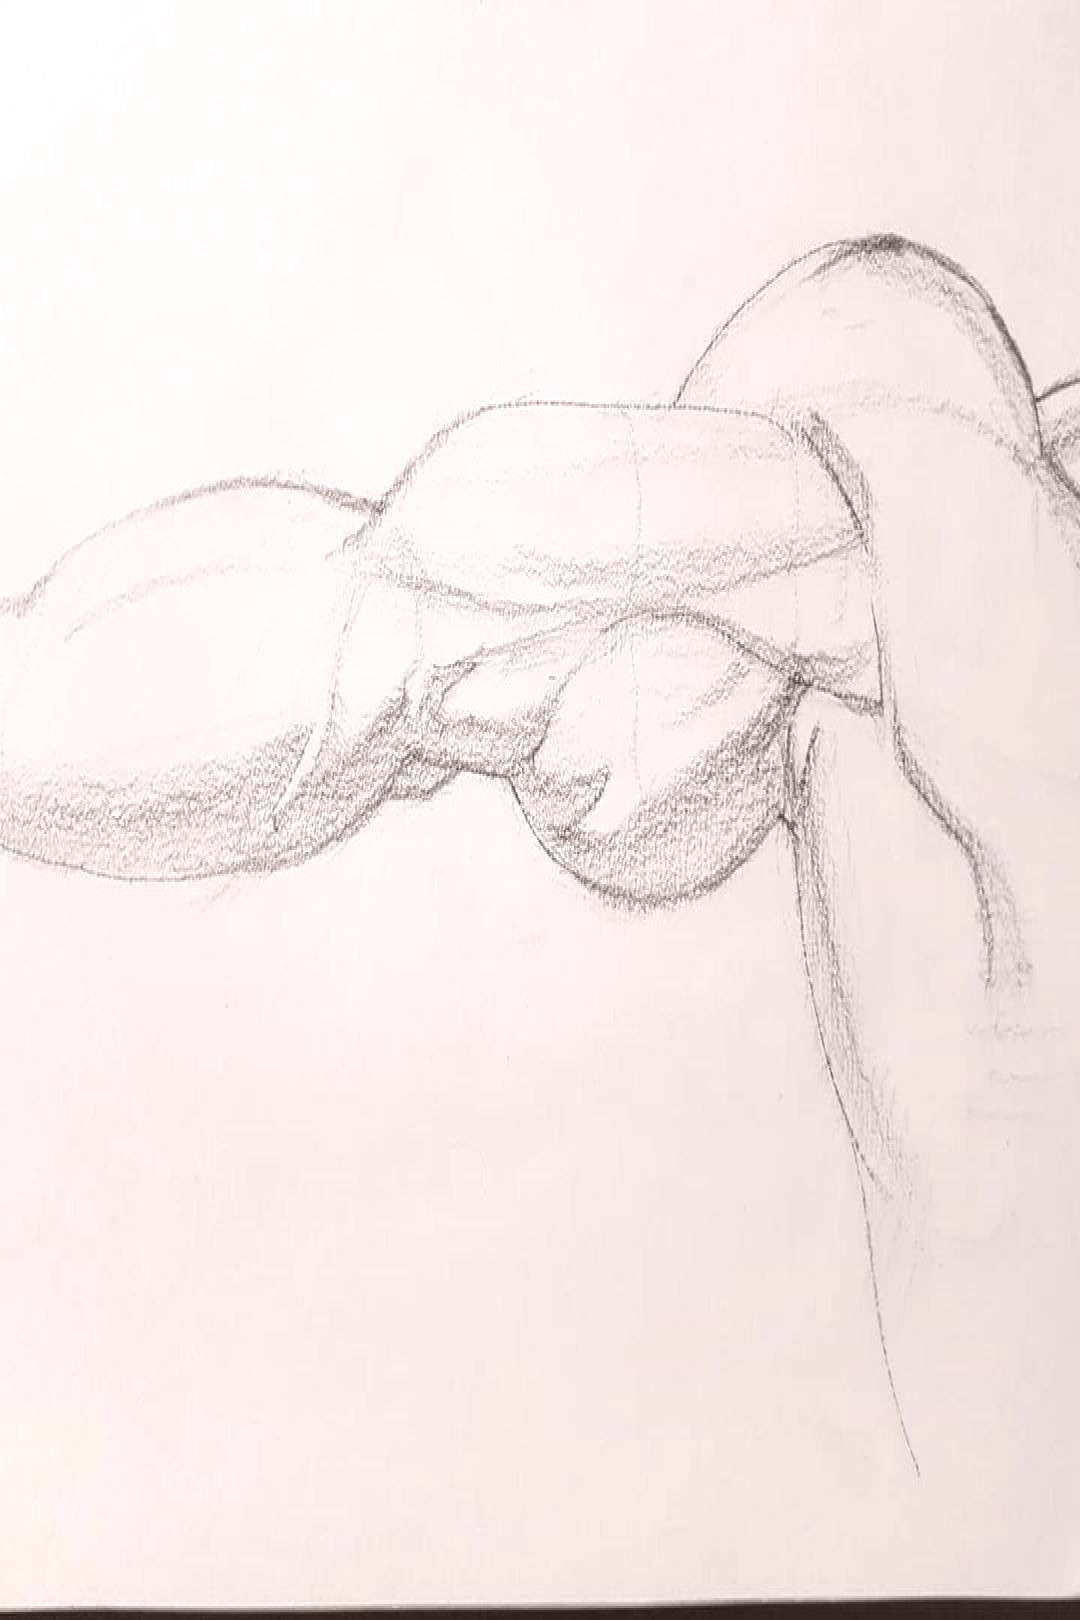 More tricep studies, been trying to get my head around the upper